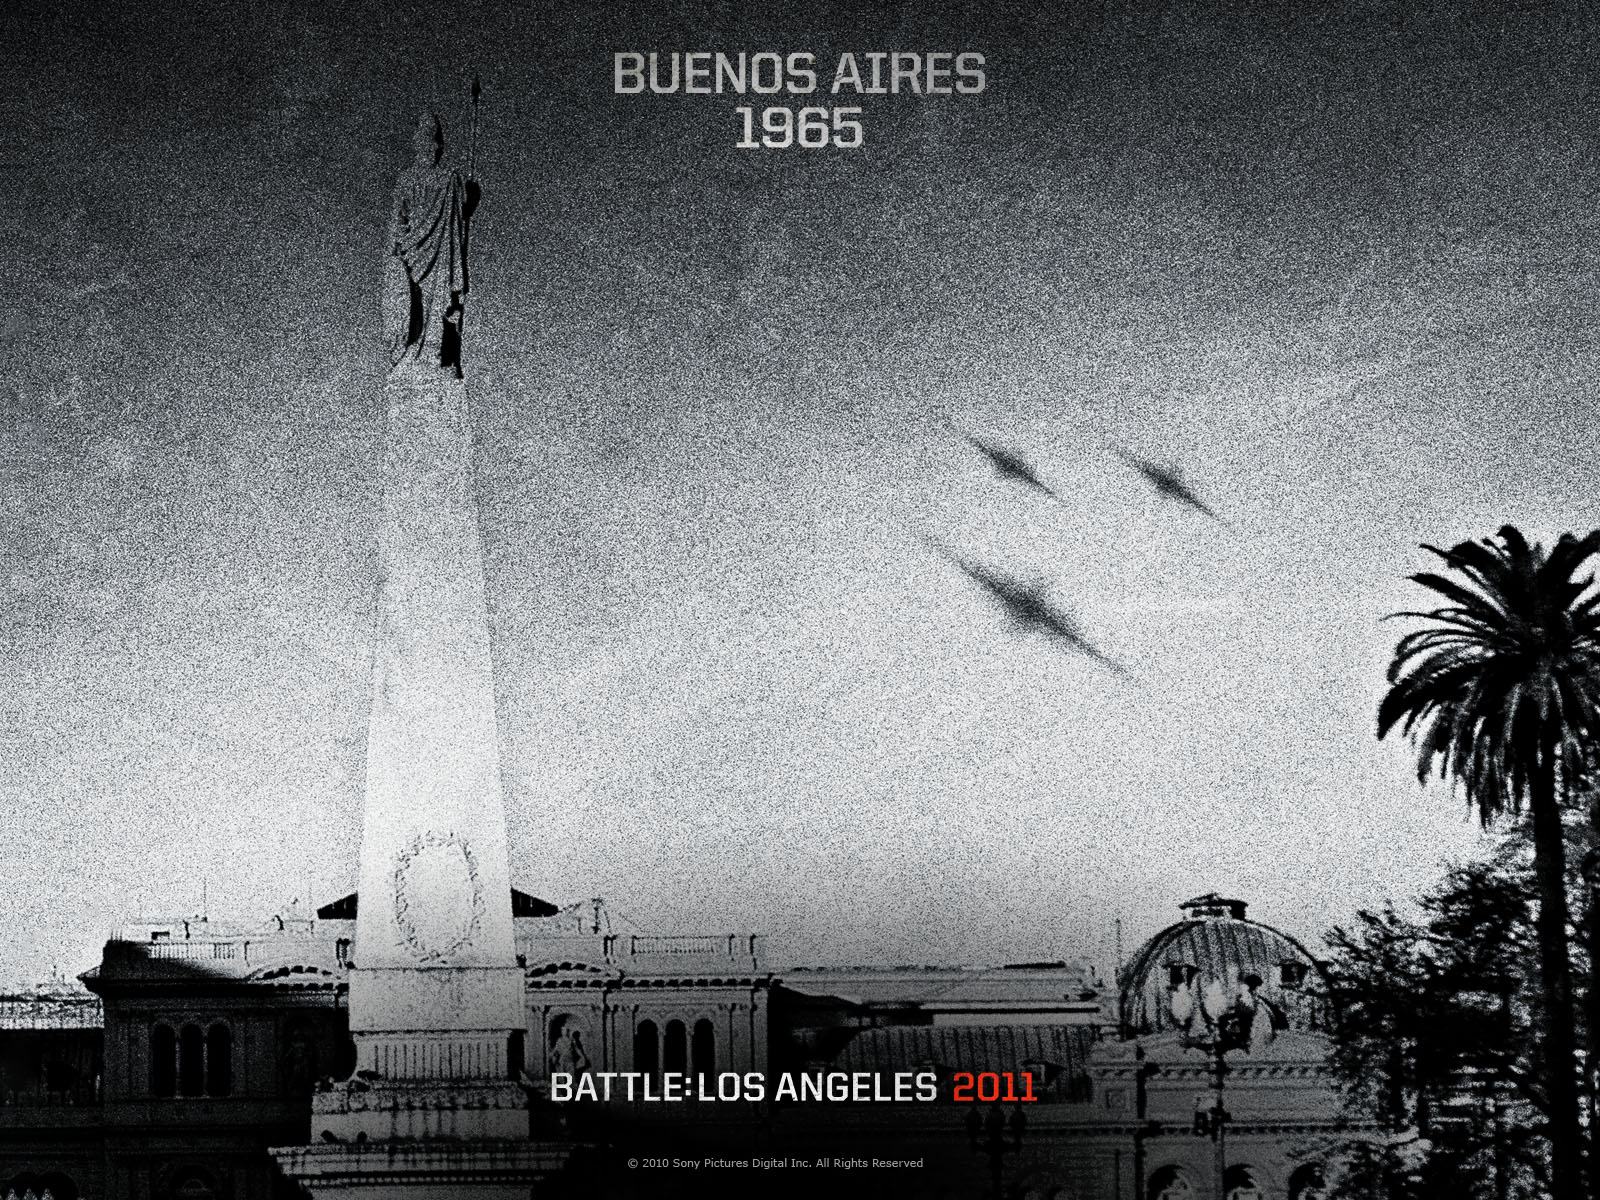 BATTLE LOS ANGELES Action Scifi Drama Poster F Wallpaper - Los angeles poster black and white